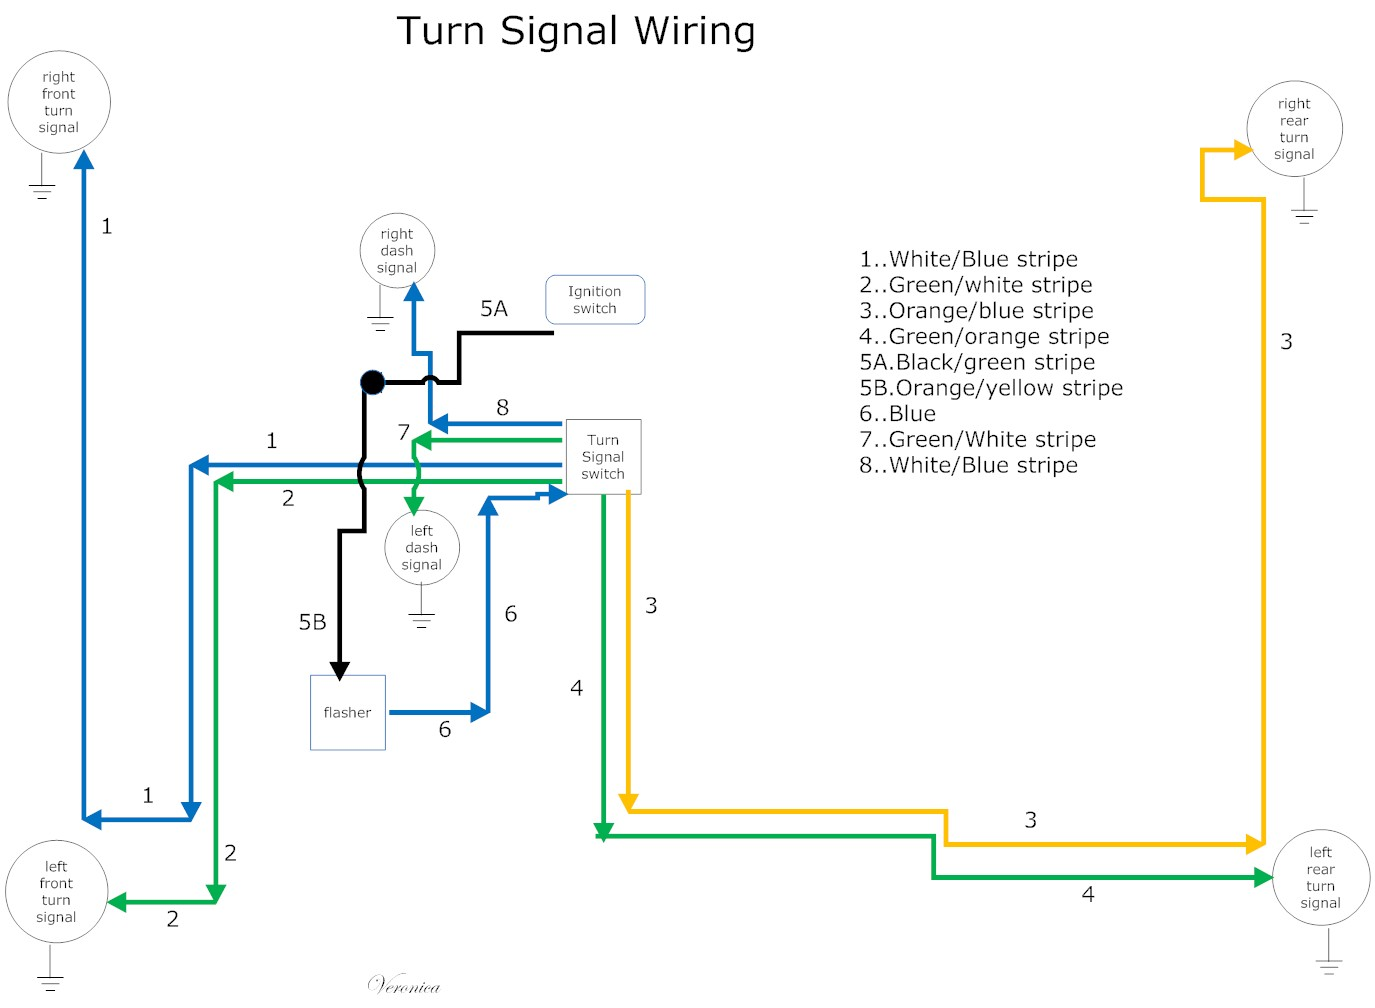 Diagram 72 Mustang Turn Signal Wiring Diagram Full Version Hd Quality Wiring Diagram Rewiringka Queidue It